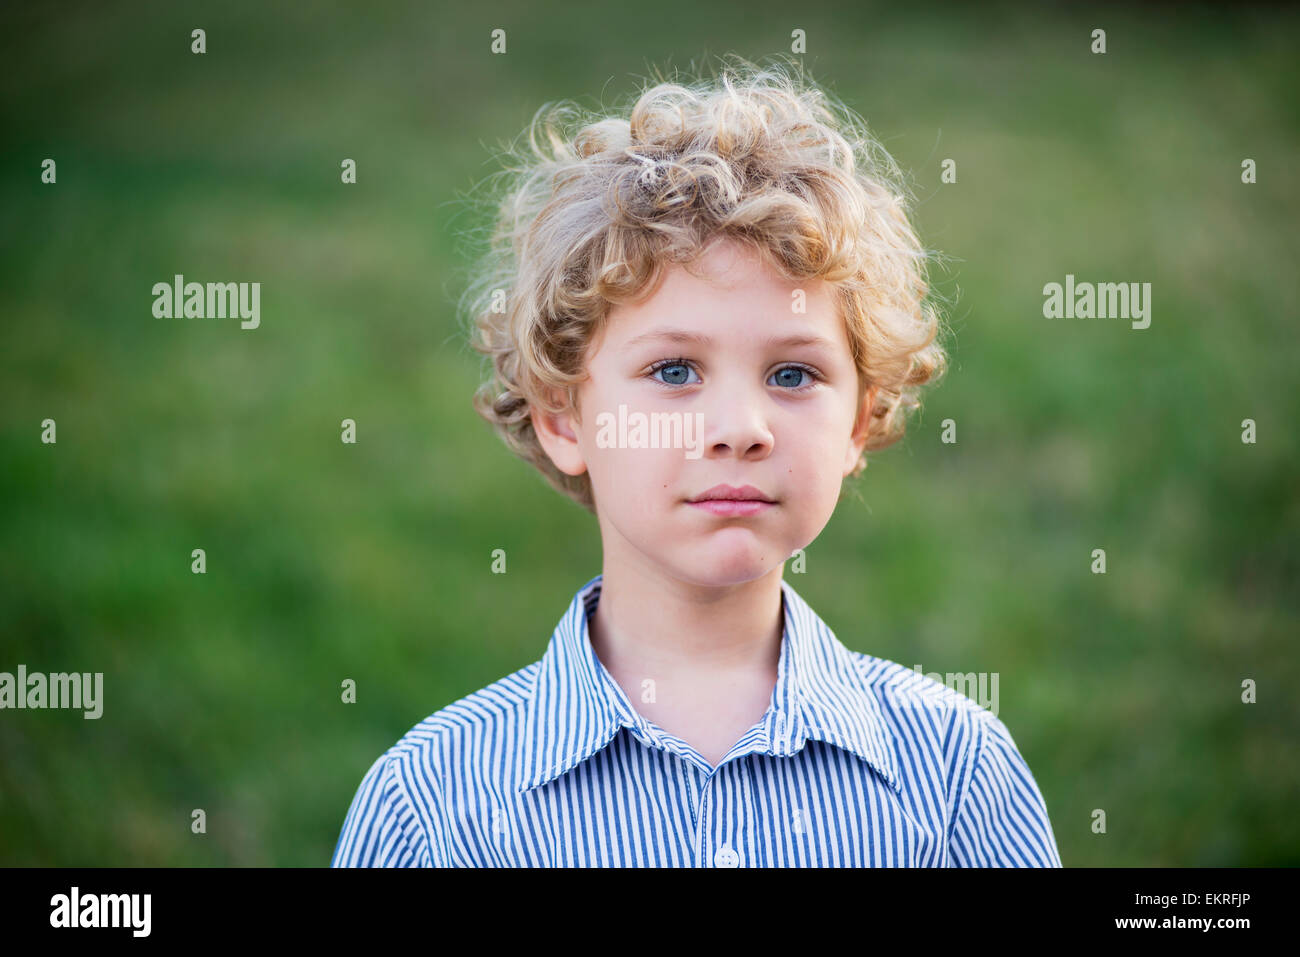 Portrait Of A Young Boy With Blond Curly Hair And Blue